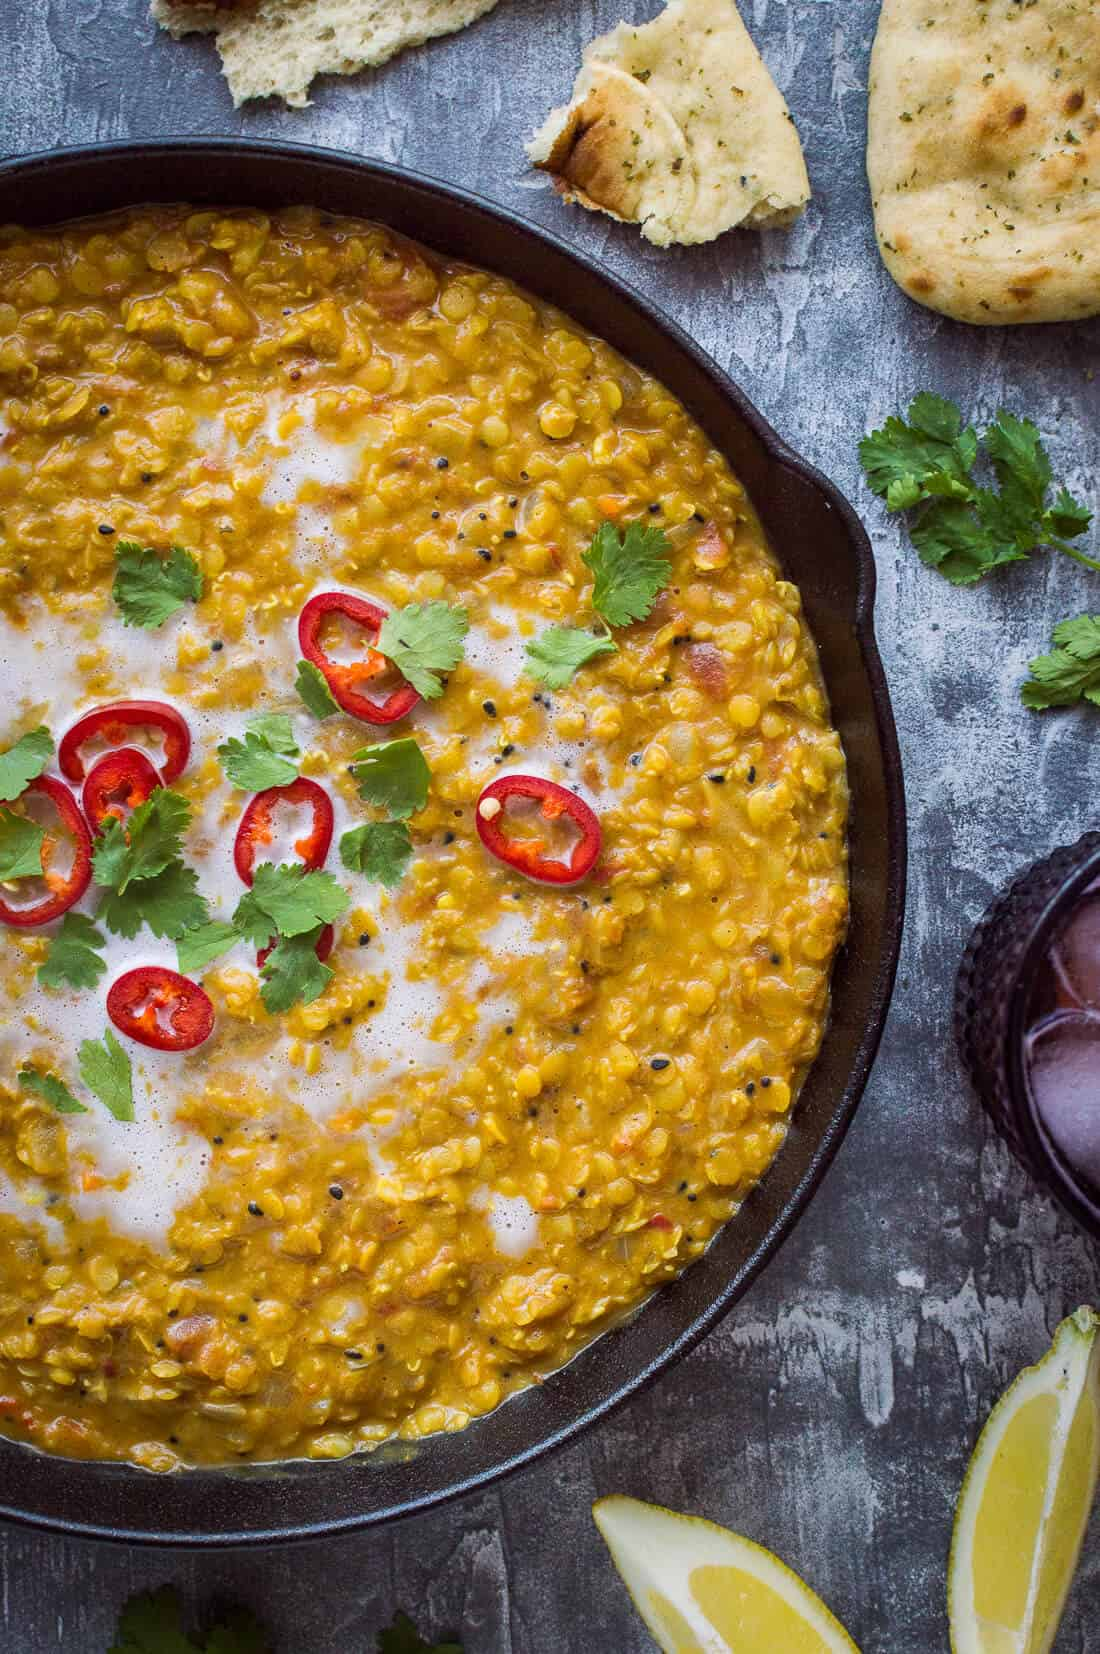 A close up of a pan of vegan red lentil dhal topped with red chilli, coriander and coconut milk